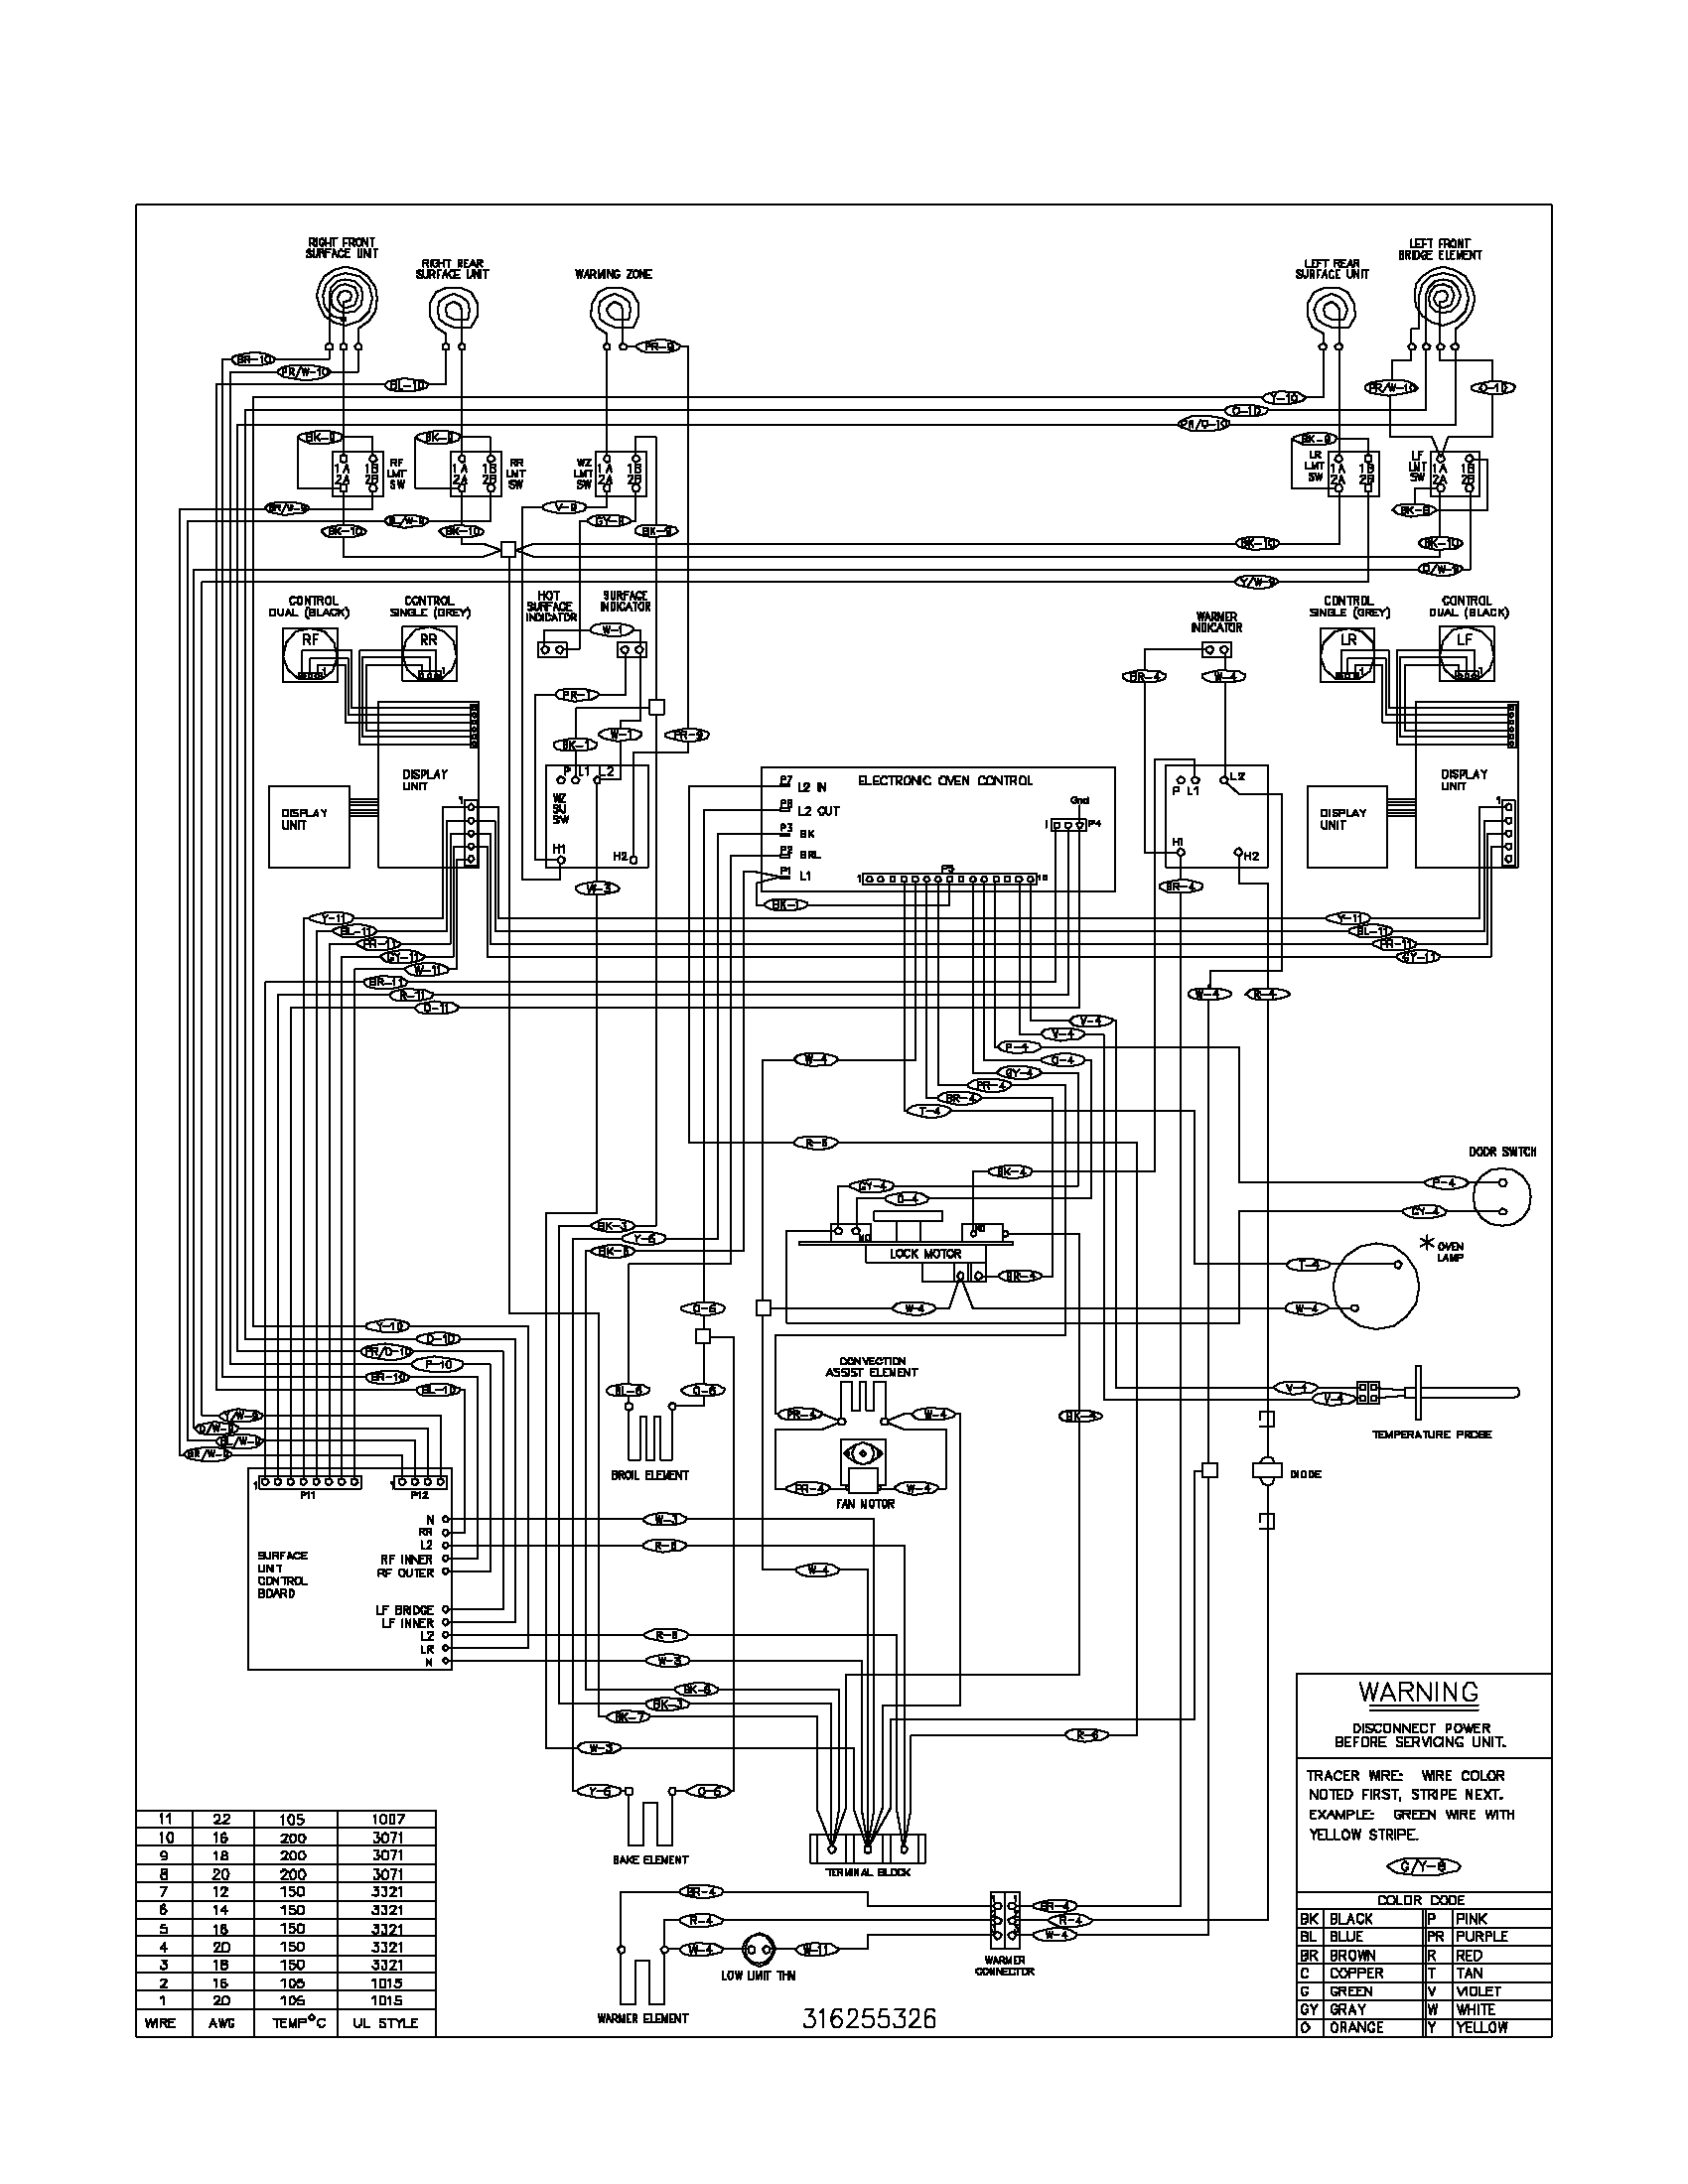 wiring diagram parts home furnace wiring diagram oil furnace wiring diagram \u2022 free sears thermostat wiring diagram at mifinder.co